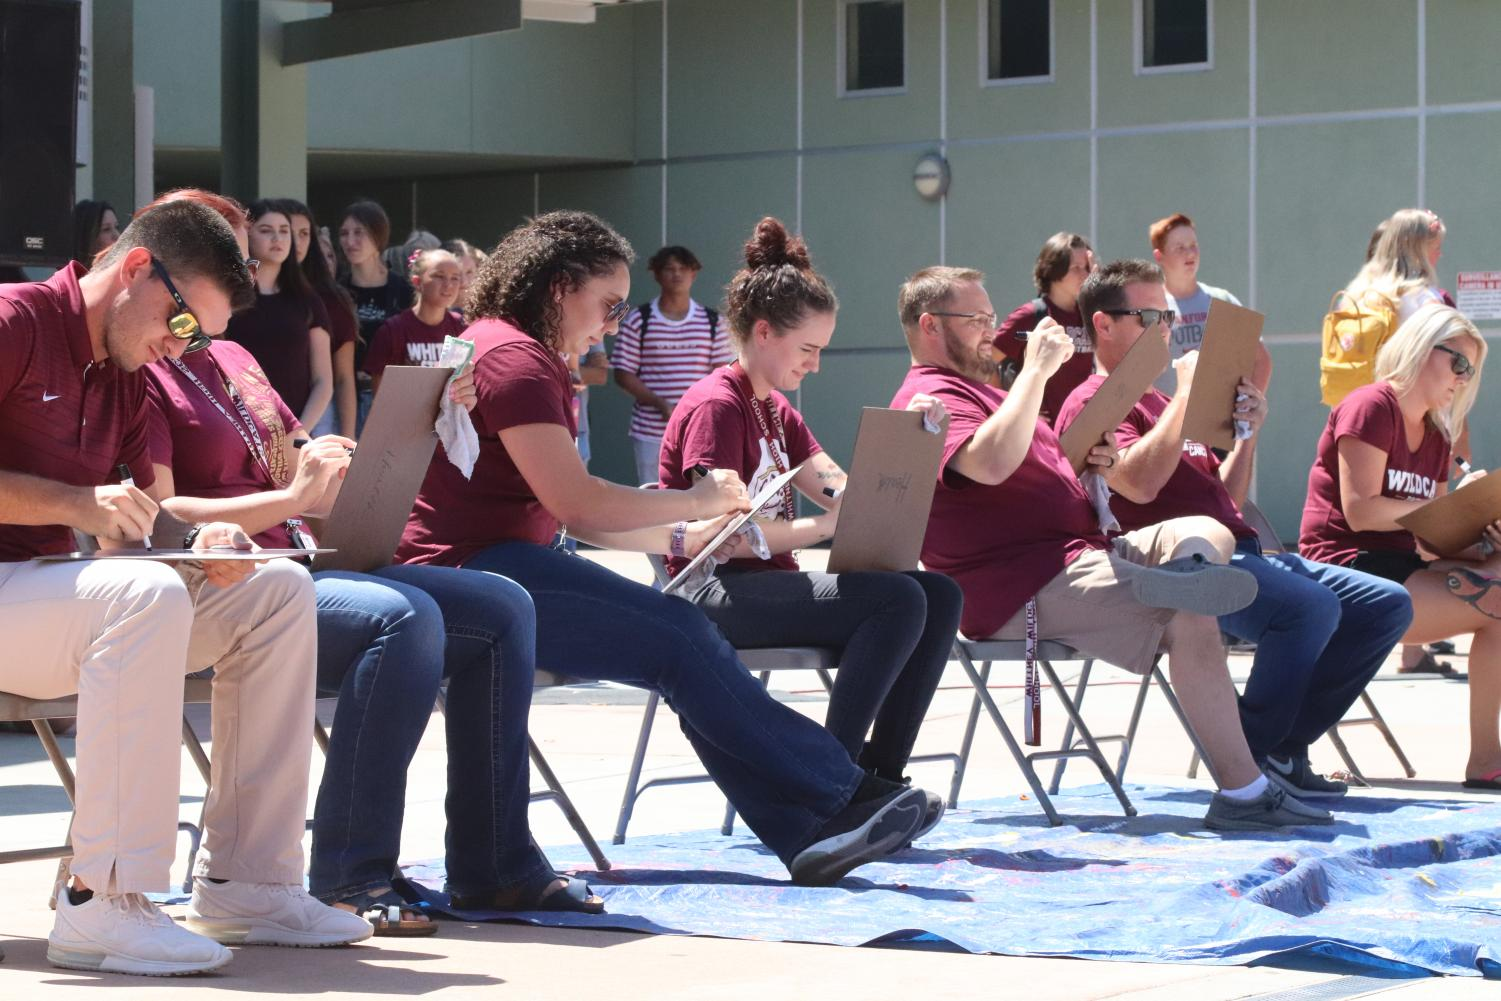 At the Aug. 23 LTA, new teachers and staff members participate in a game to introduce themselves. Photo by Sofia McMaster.